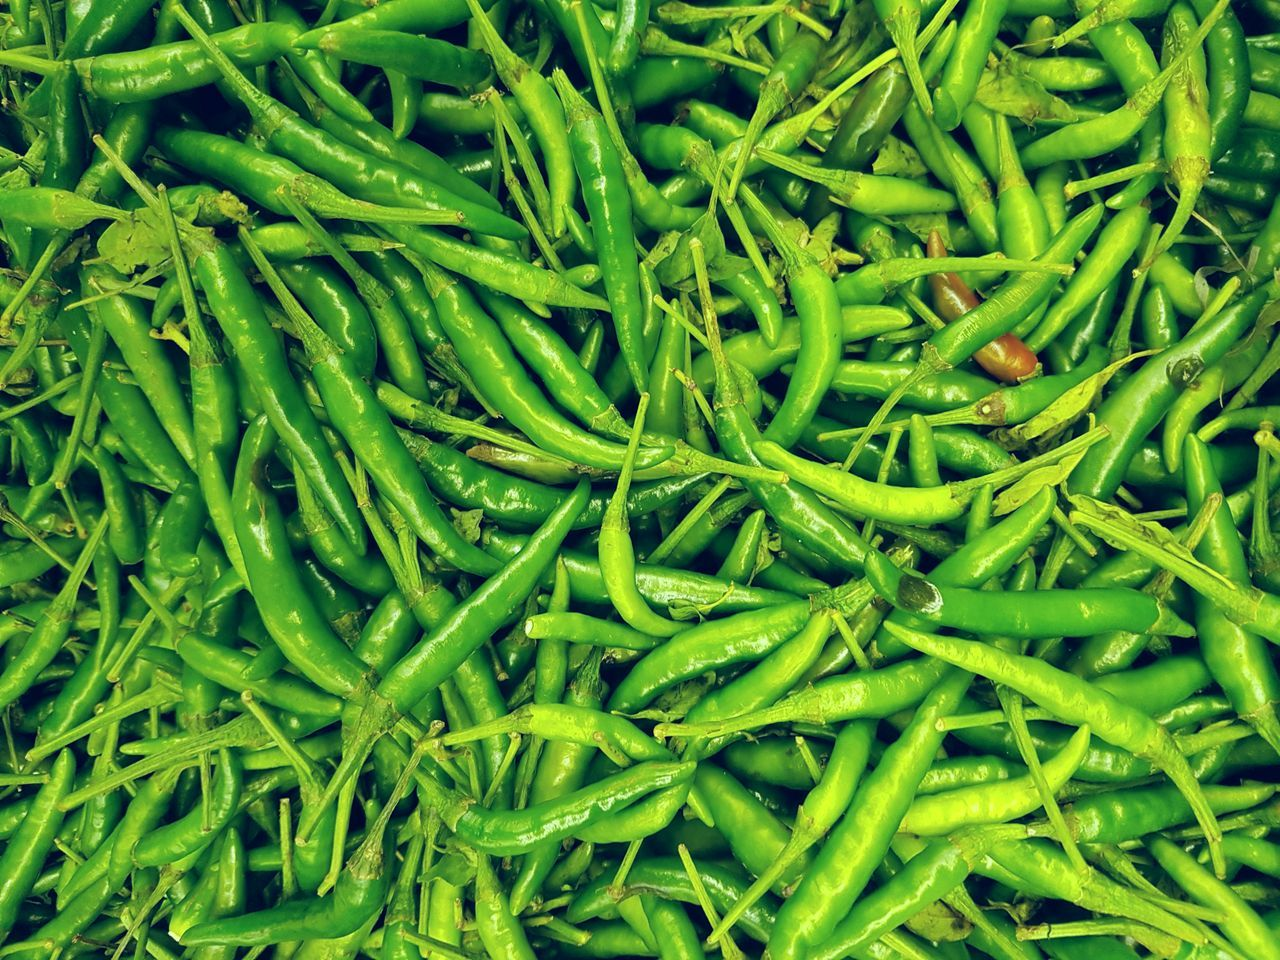 Green Color Backgrounds Full Frame Plant Nature Growth Close-up Freshness Agricultural Agronomy Agriculture Organic Market Plants Still Life Large Group Of Objects Abundance Chillies Chilly